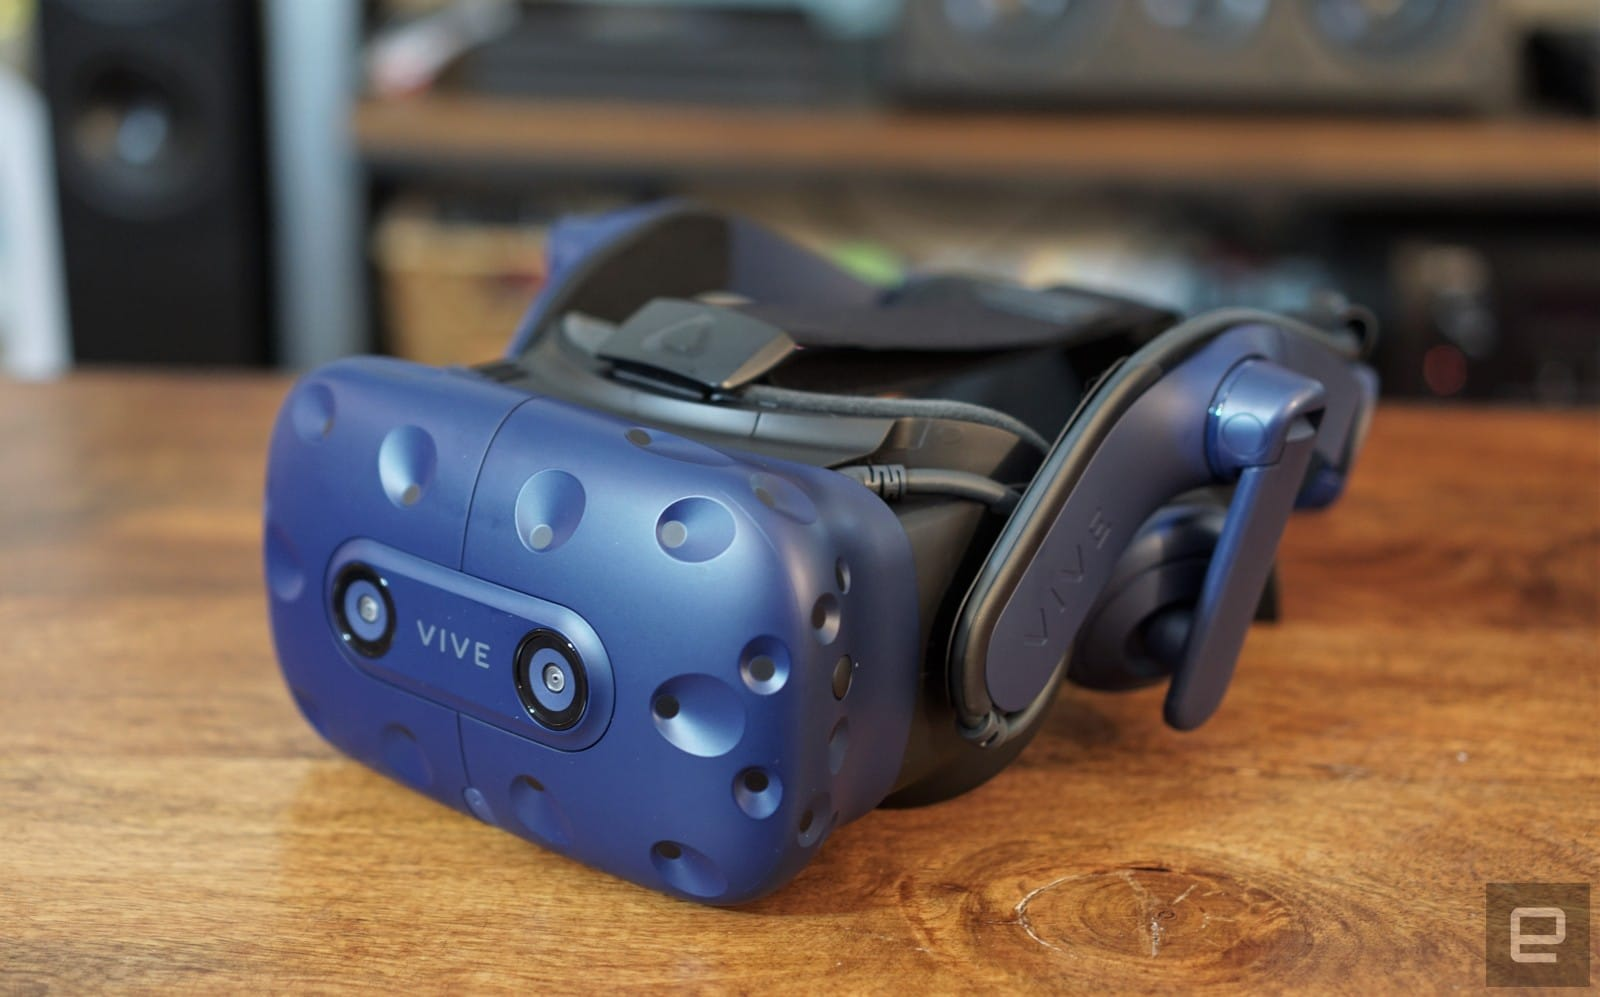 HTC Vive Pro review: Better in every way, but it's not for you